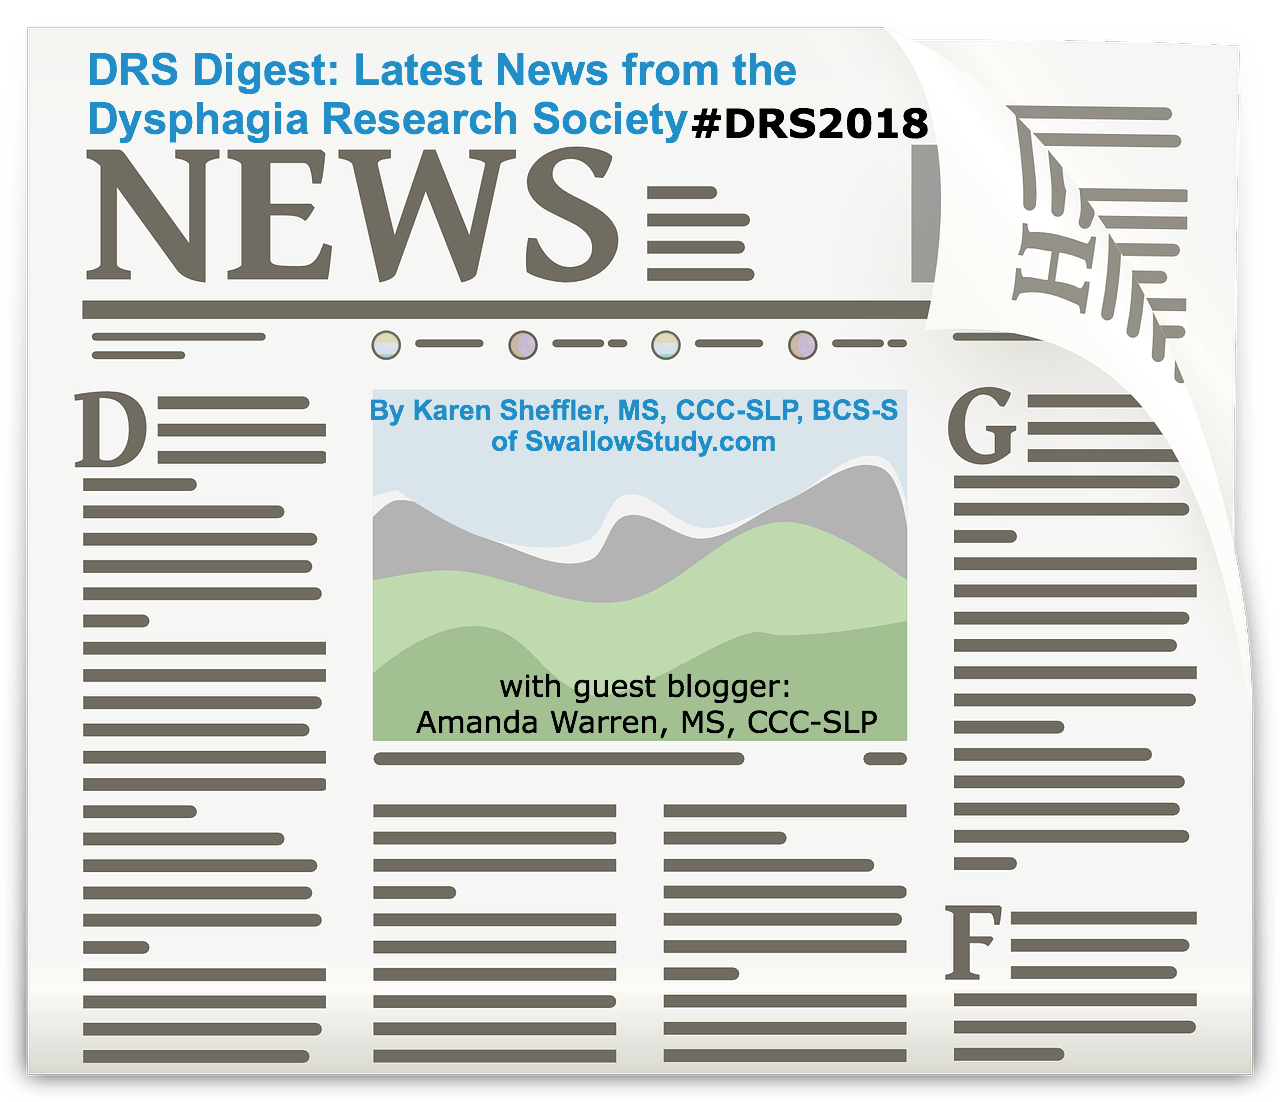 Dysphagia Digest: A blog about the Dysphagia Research Society's 2018 Annual Meeting